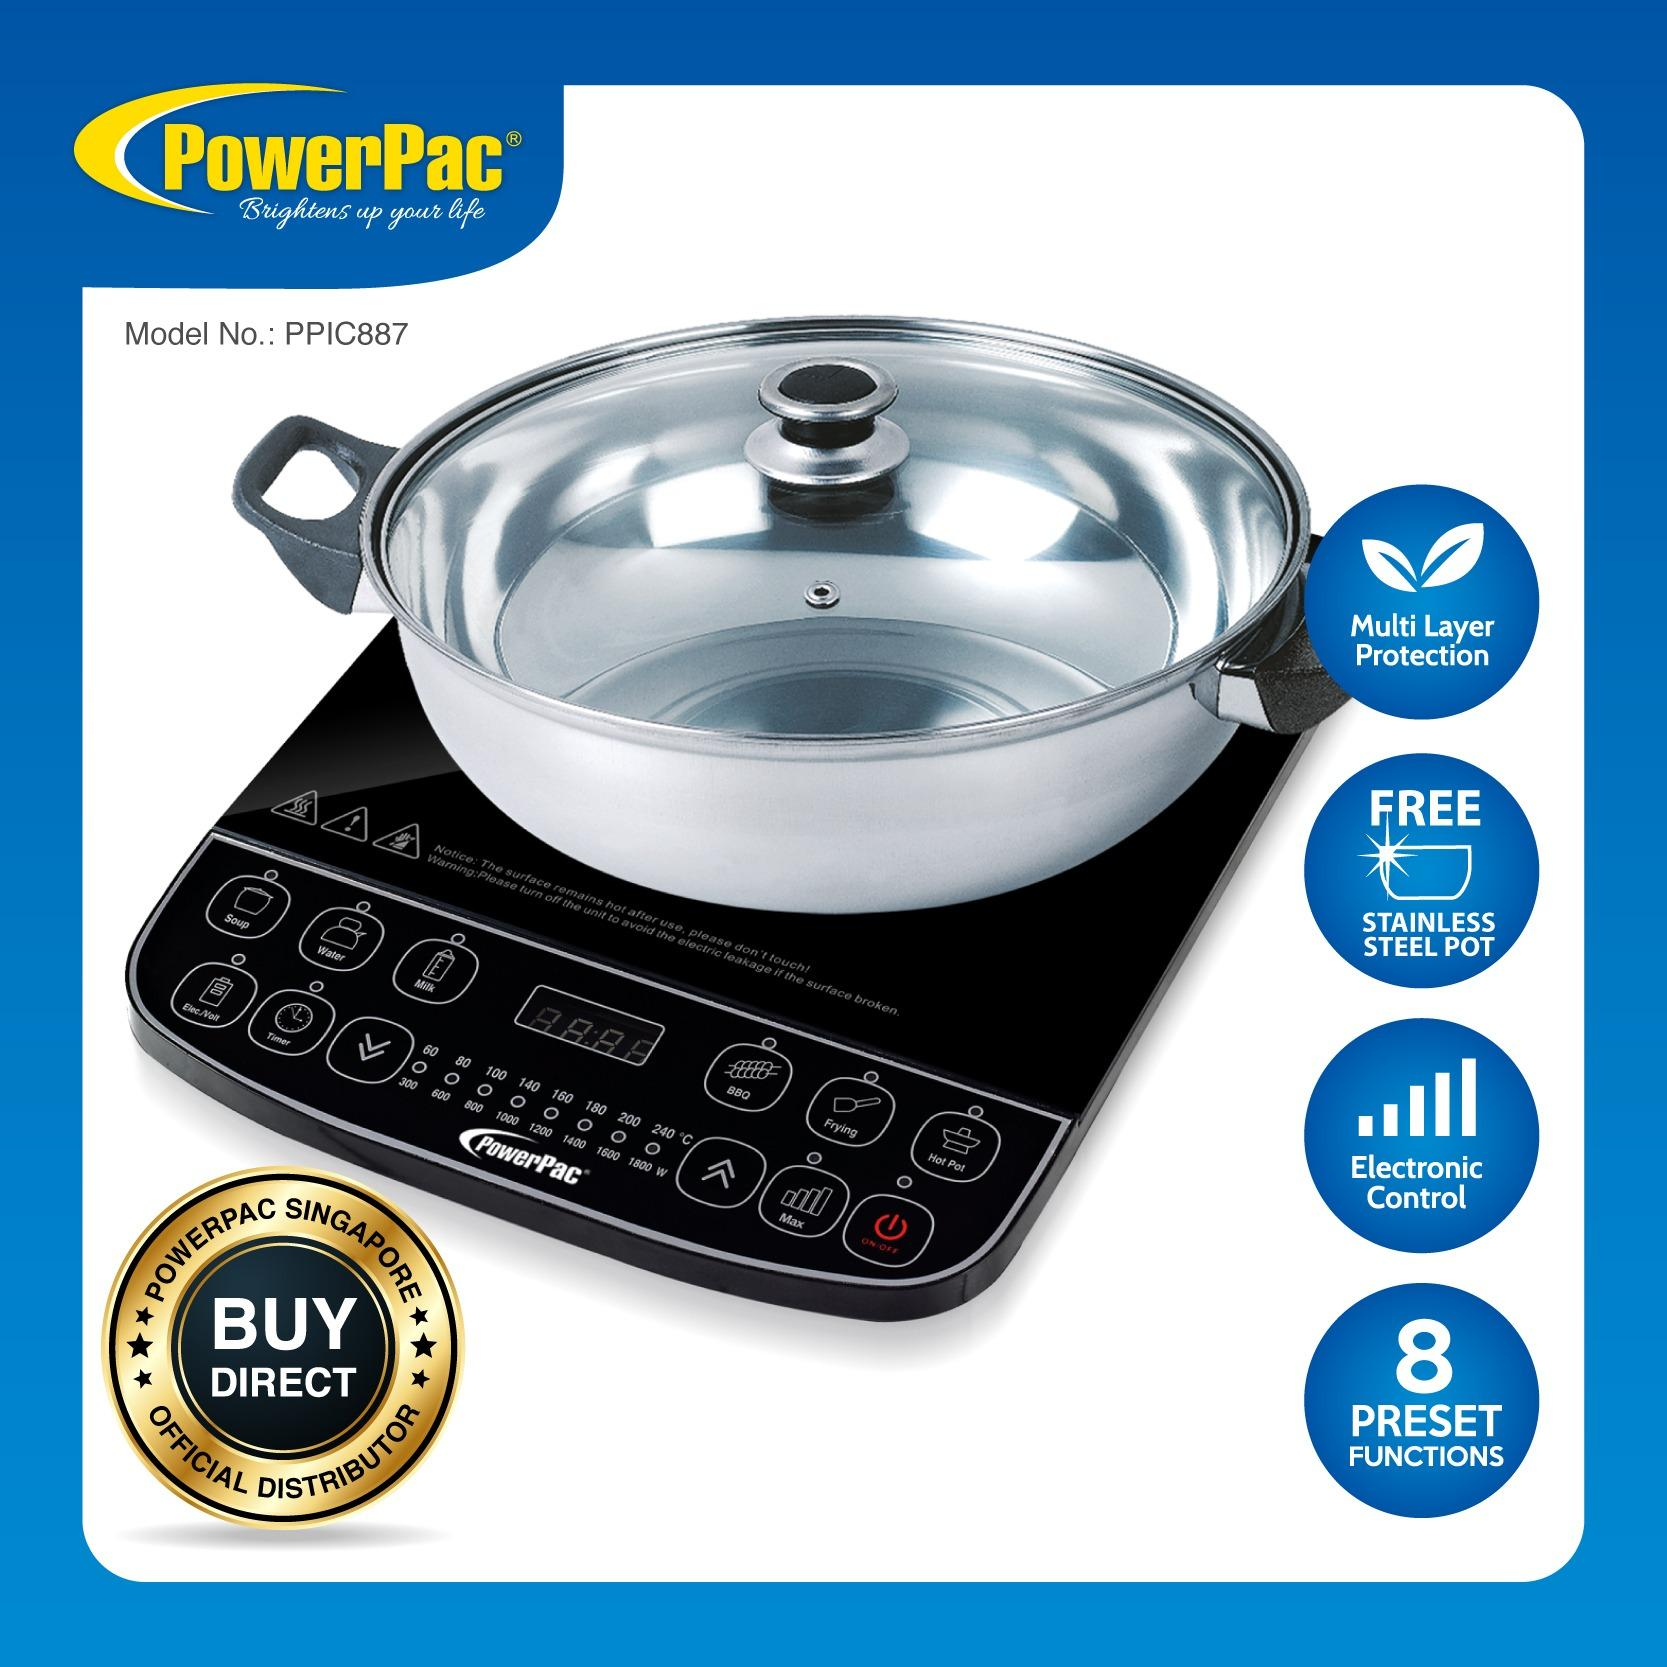 Low Cost Powerpac Induction Cooker With Stainless Steel Pot Ppic887